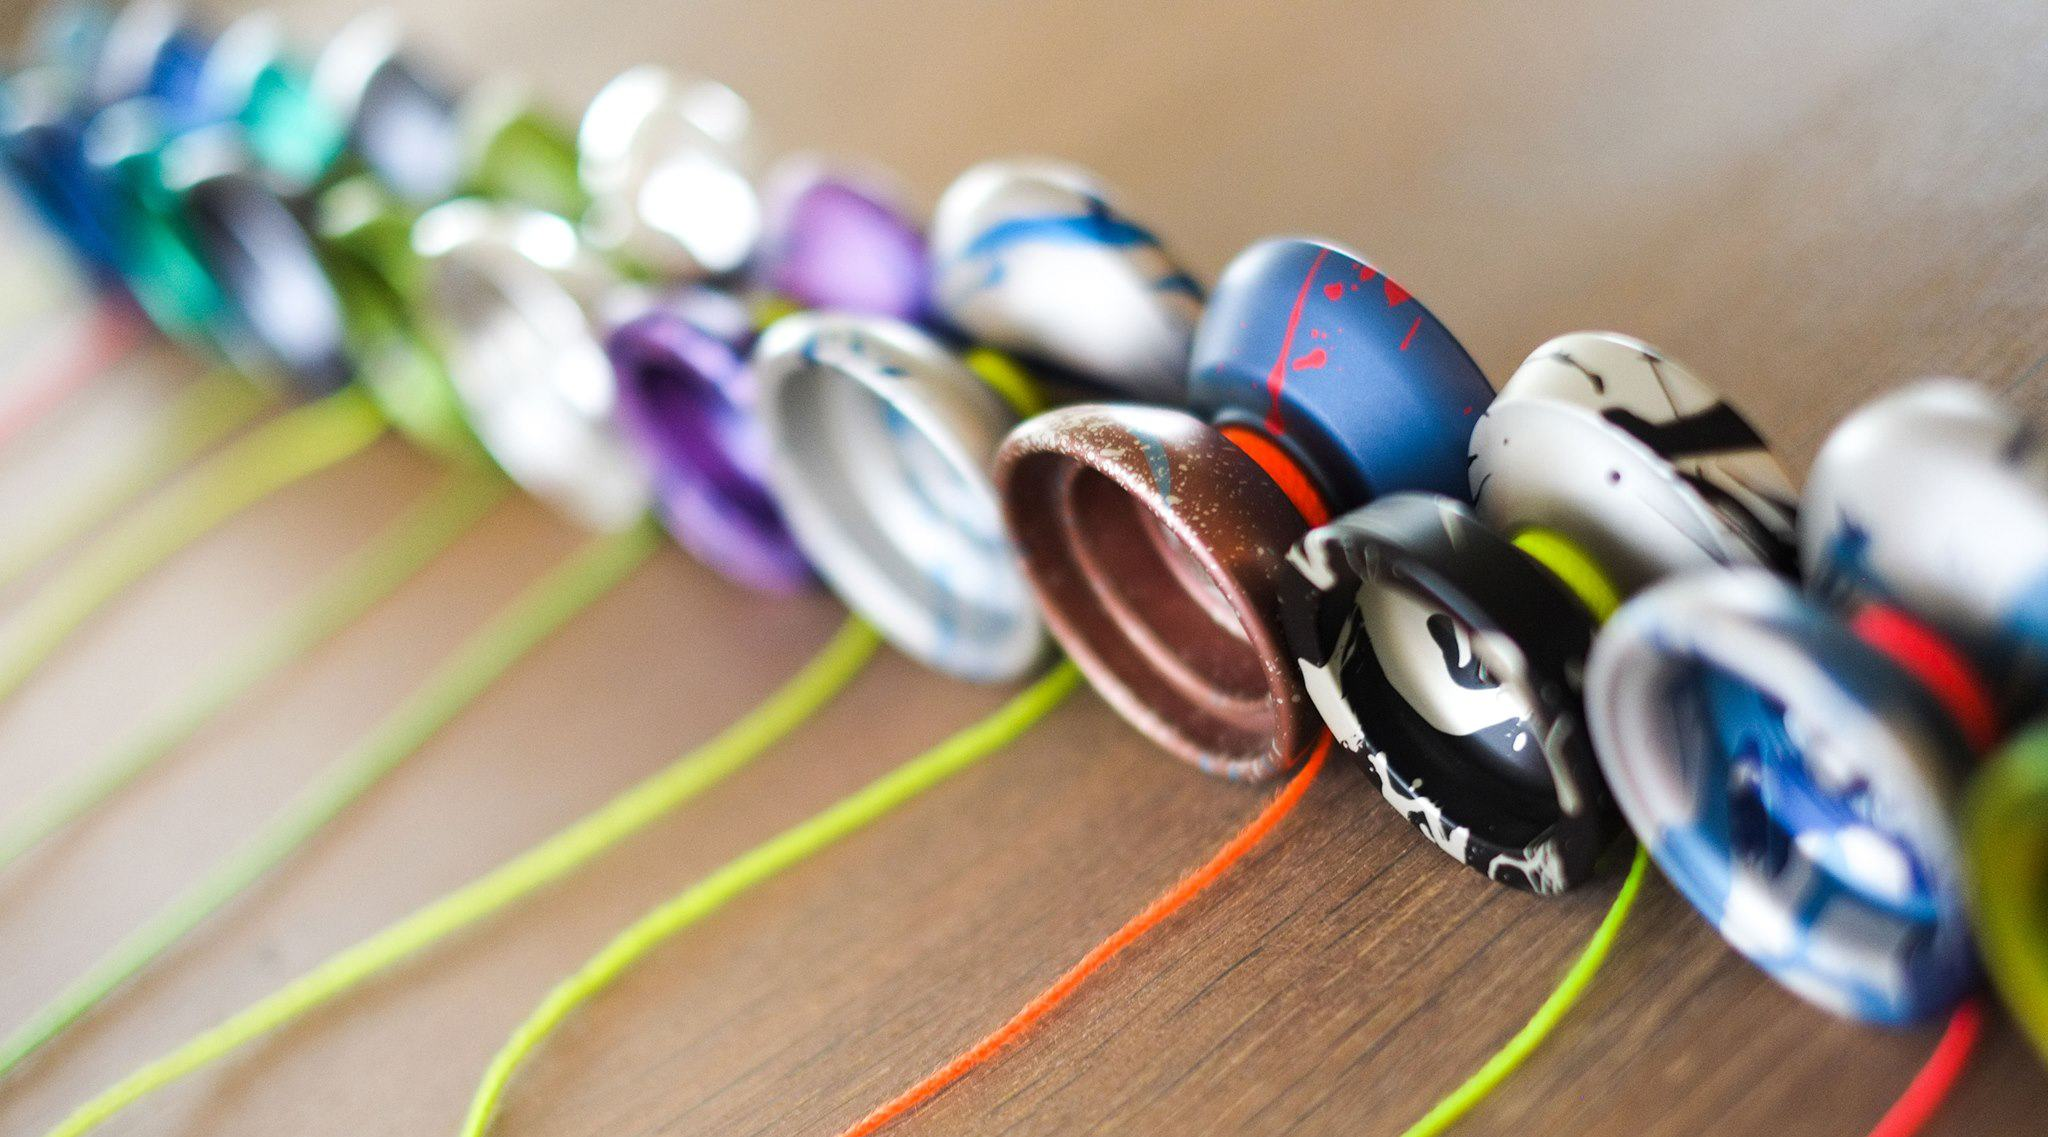 Professional yoyo championships in Burnaby this weekend